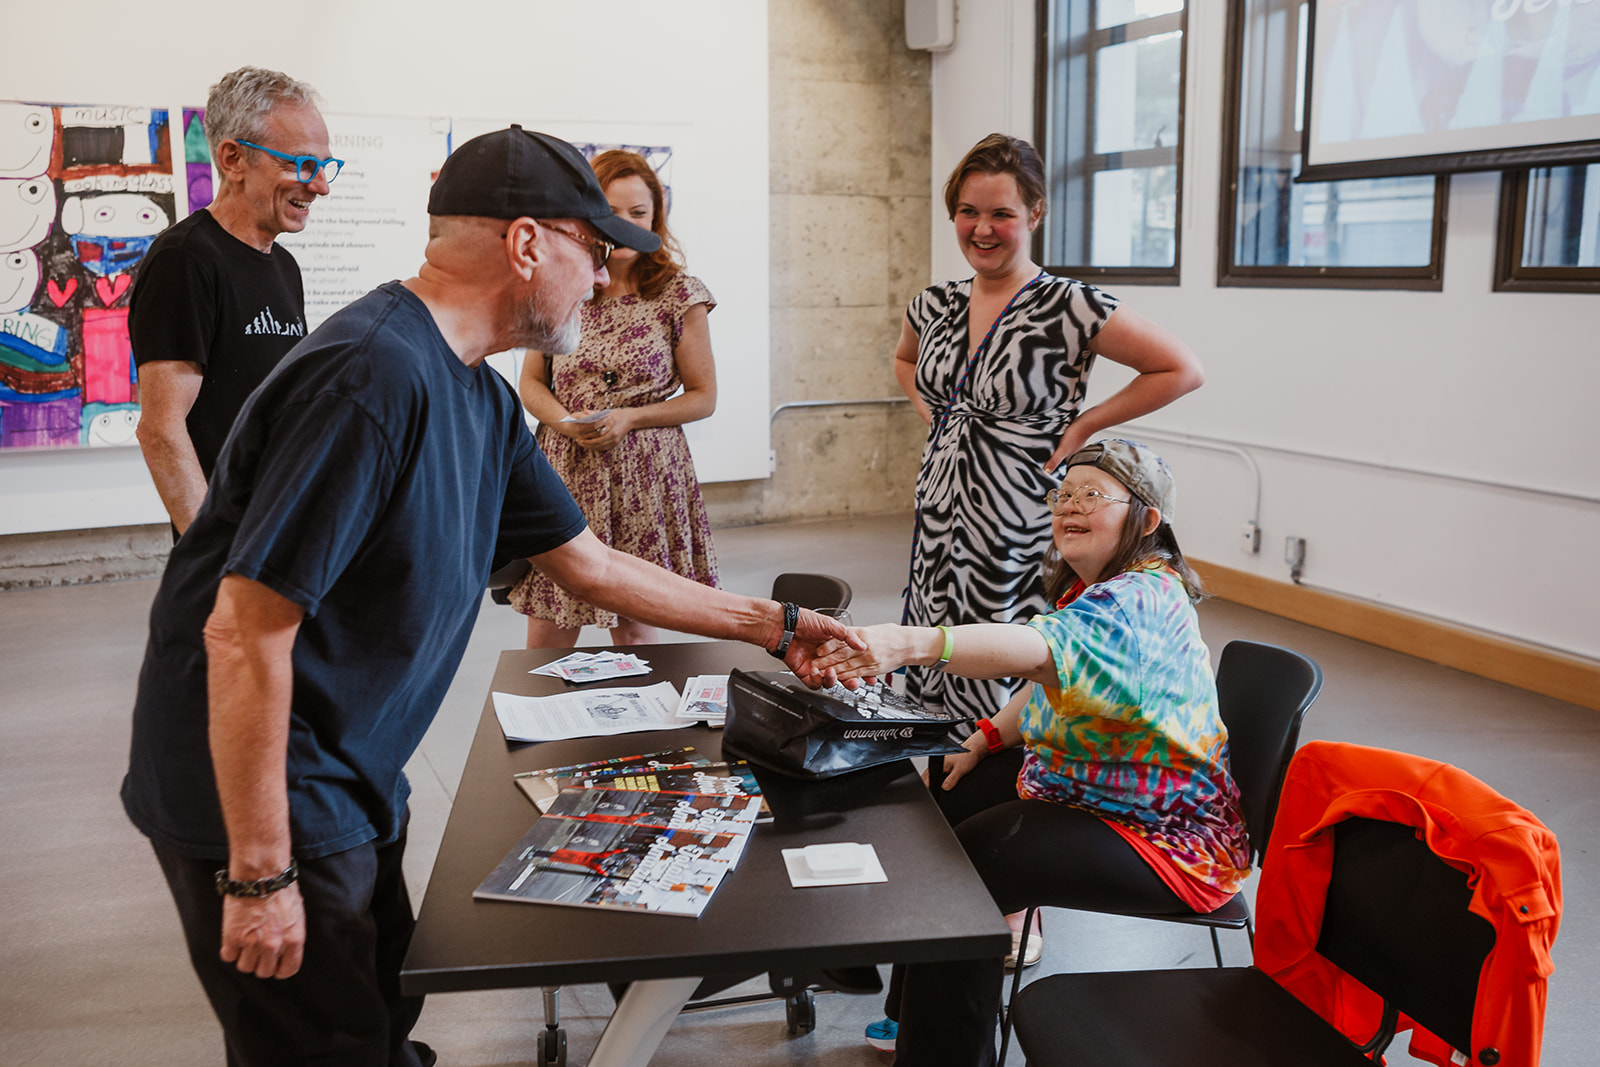 DTES artist Edzy shakes Teresa's hand as she sits by her book table on July 22, 2019. Photo: This Is It Studios.